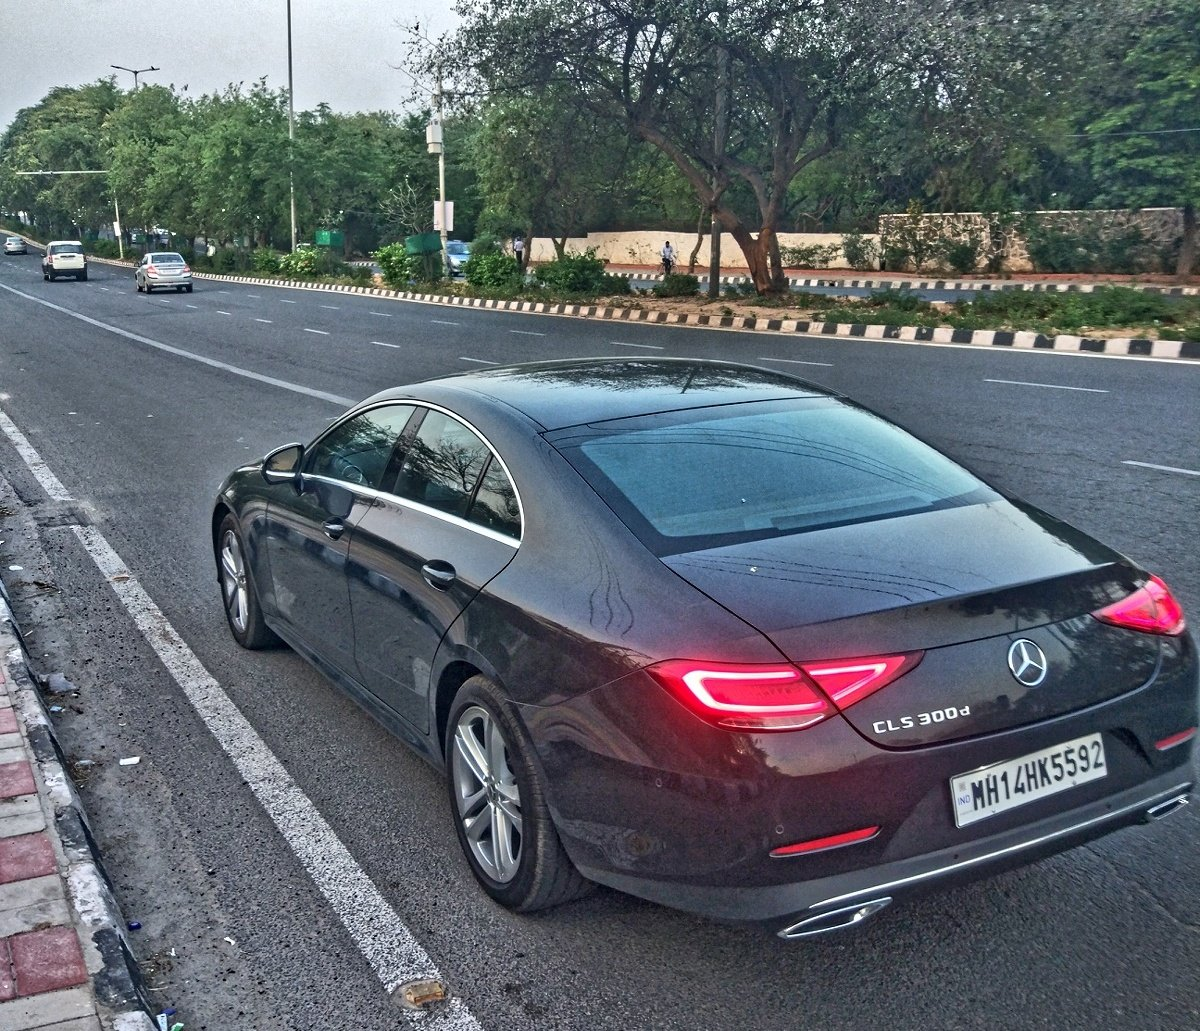 I can&#39;t decide which is better looking, @MercedesBenzInd does make some stunners.. #cls #C43Coupe #cantdecide <br>http://pic.twitter.com/9rVMJtNzs5